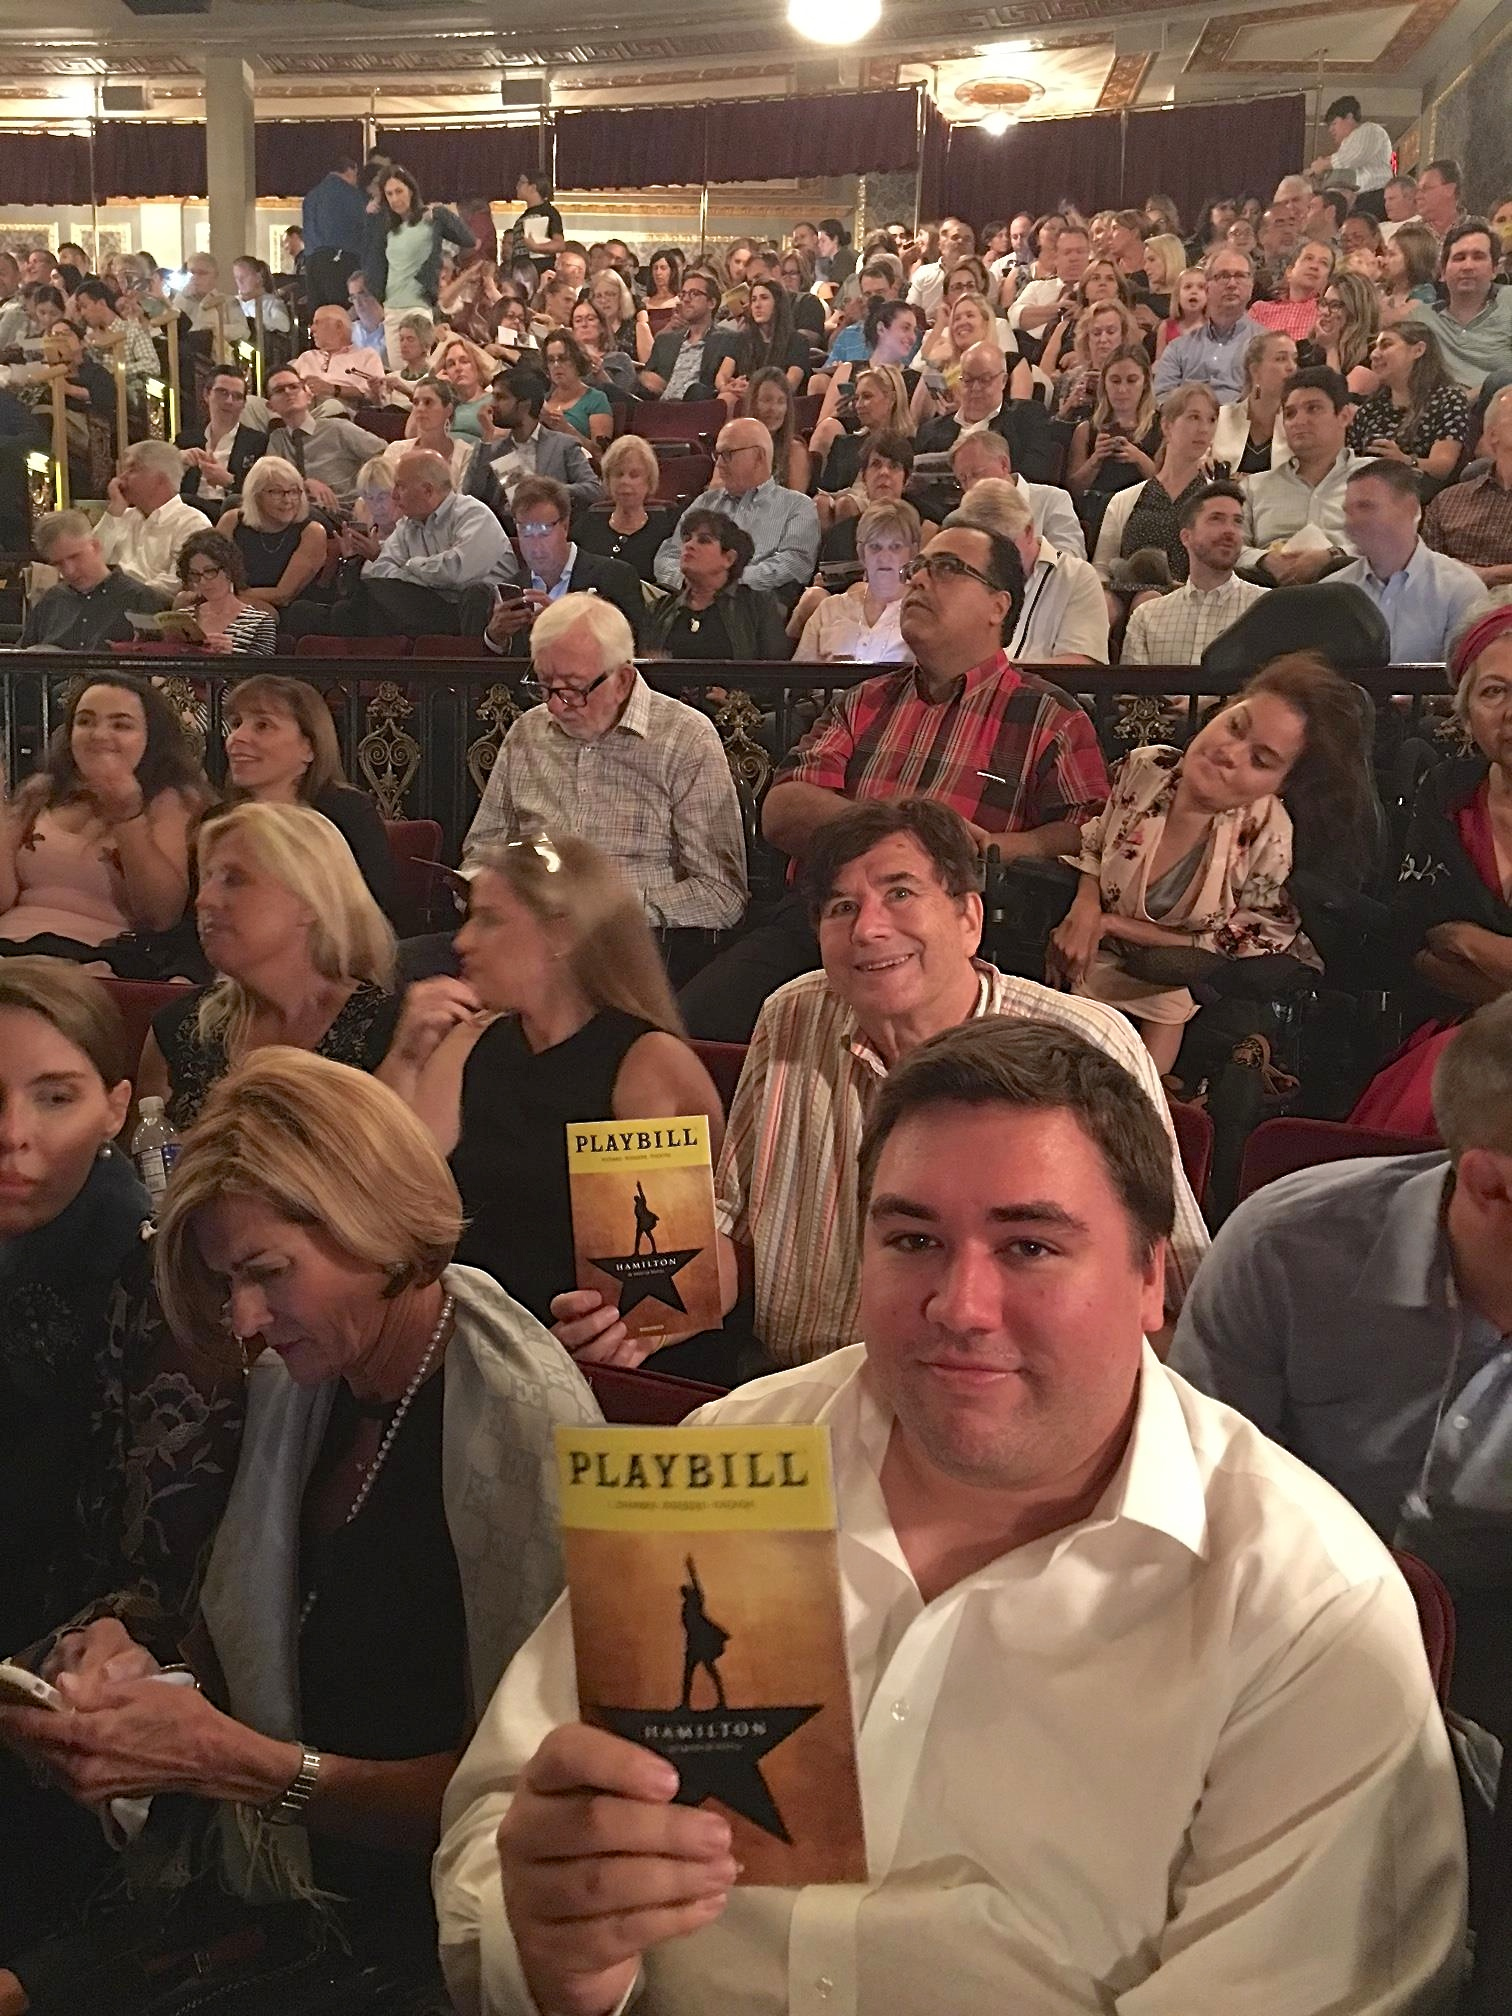 Greg, John, & I see HAMILTON on 9-26-17. Fabulous play...